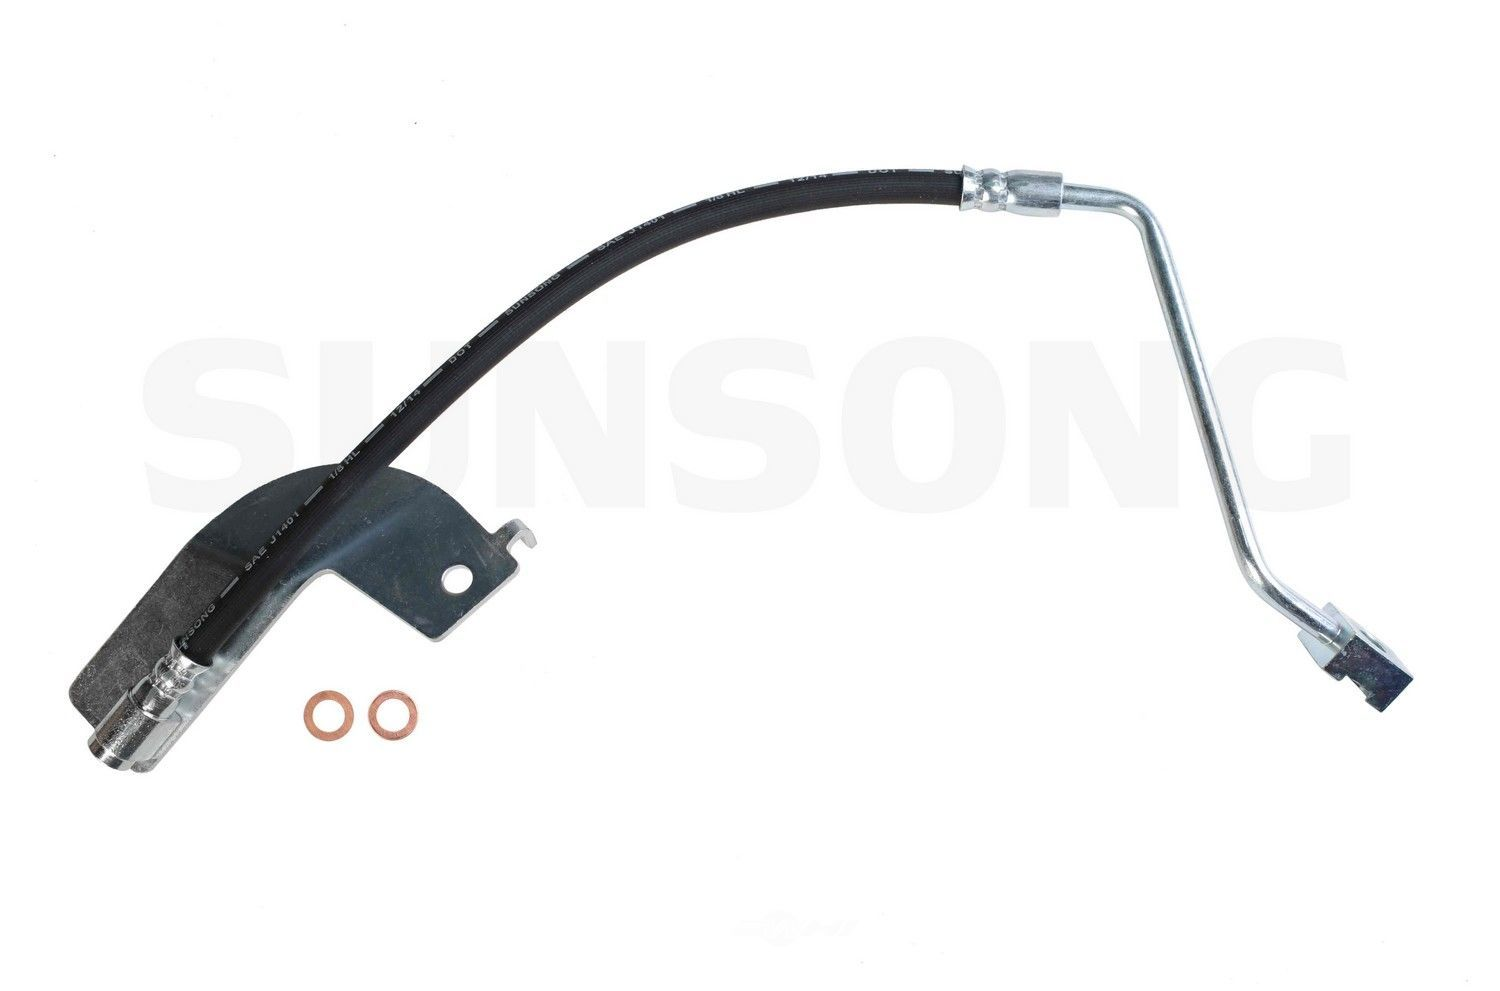 SUNSONG NORTH AMERICA - Brake Hydraulic Hose (Rear Left) - SUG 2201900